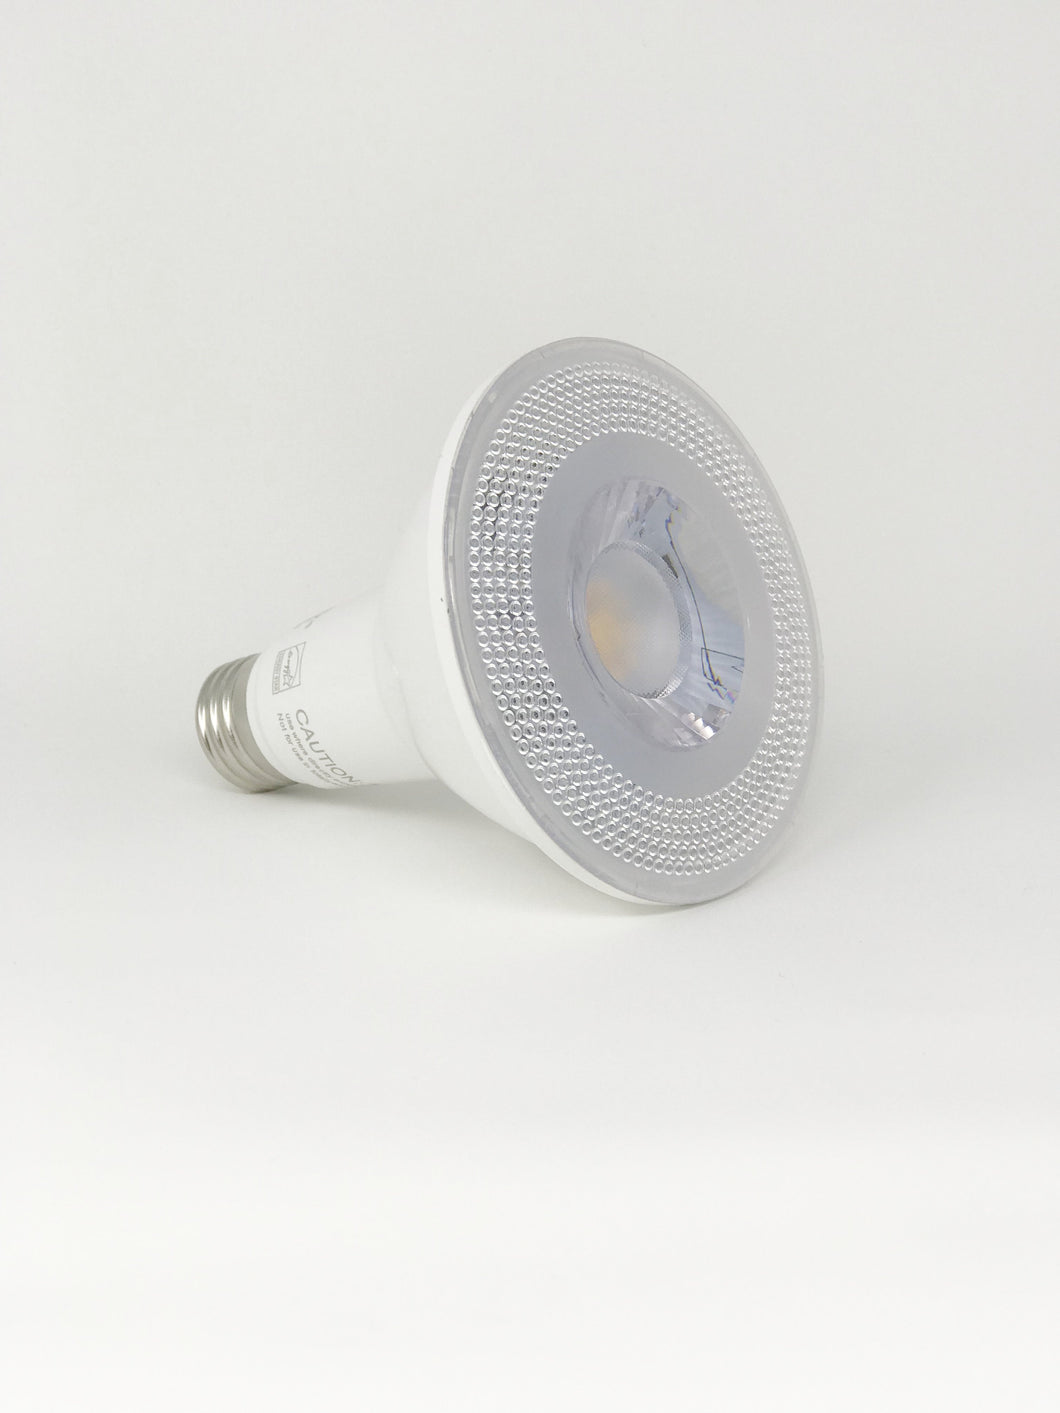 PATILUM - PAR30 LED Light Bulb